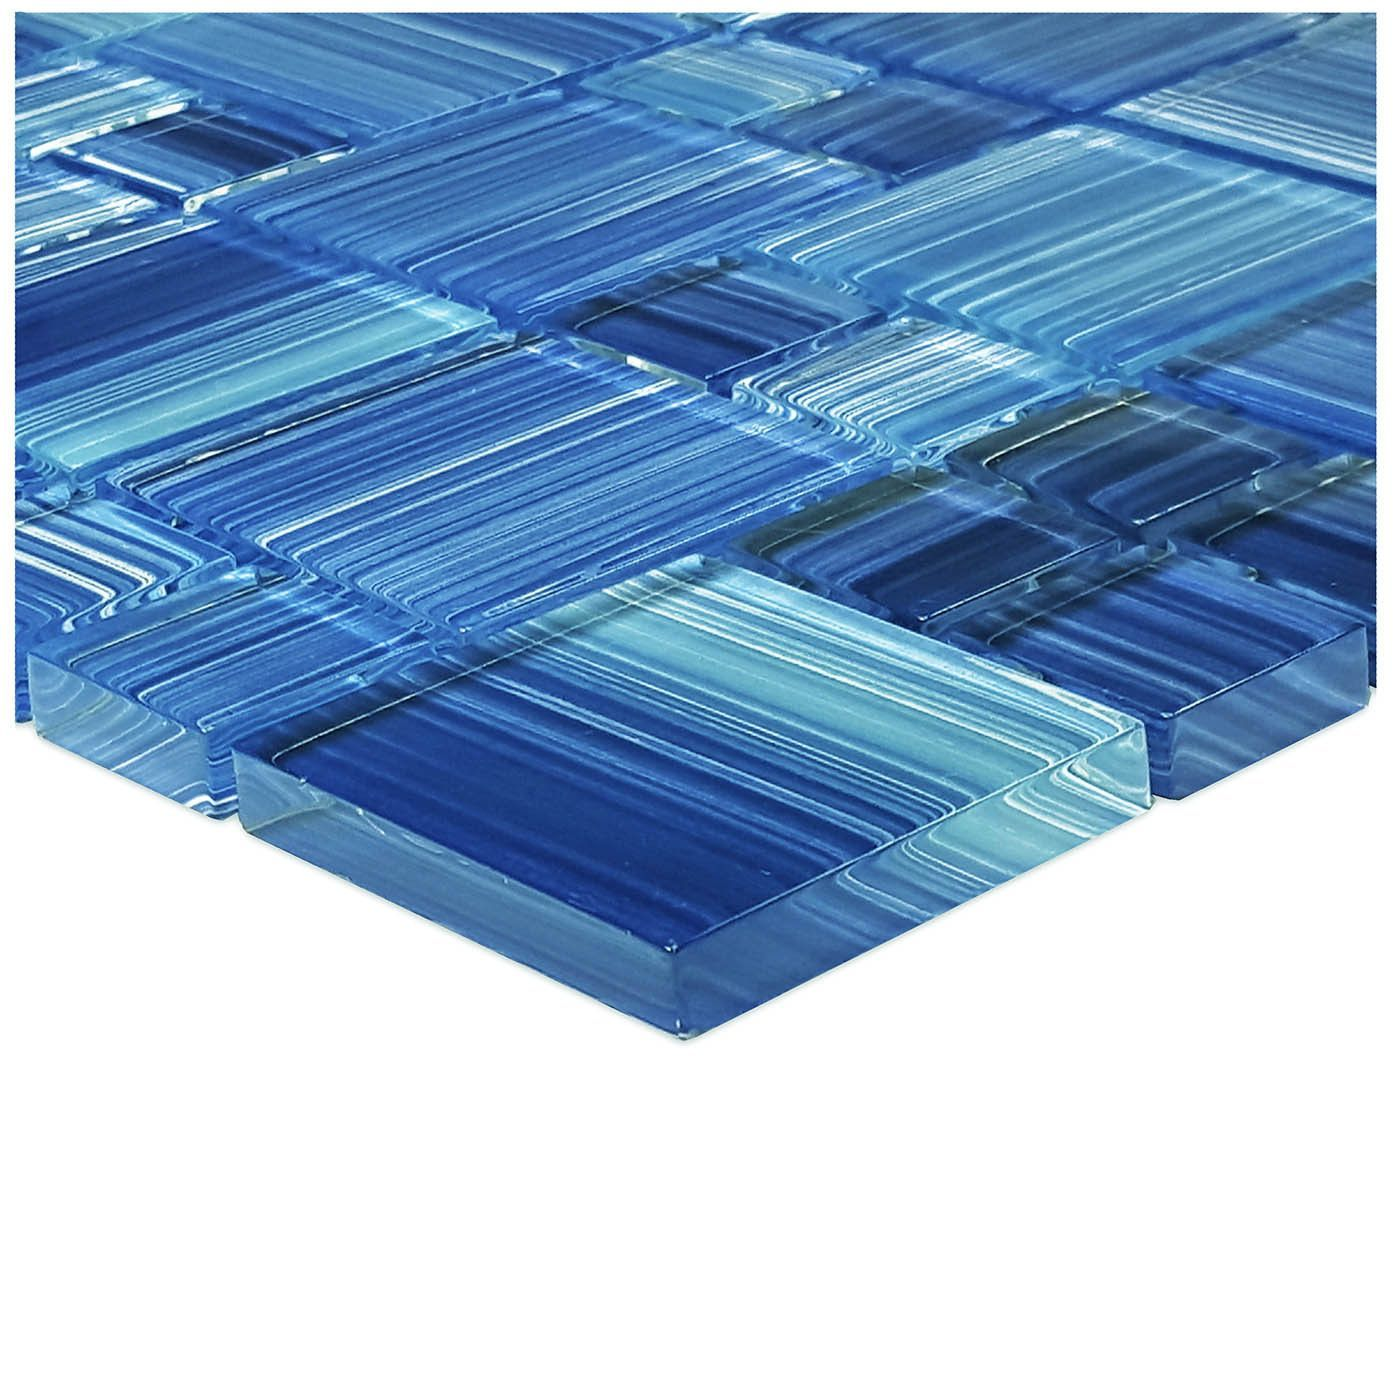 Caribbean Blue Mixed Glass Tile Glass Pool Tile Tiles Swimming Pool Tiles